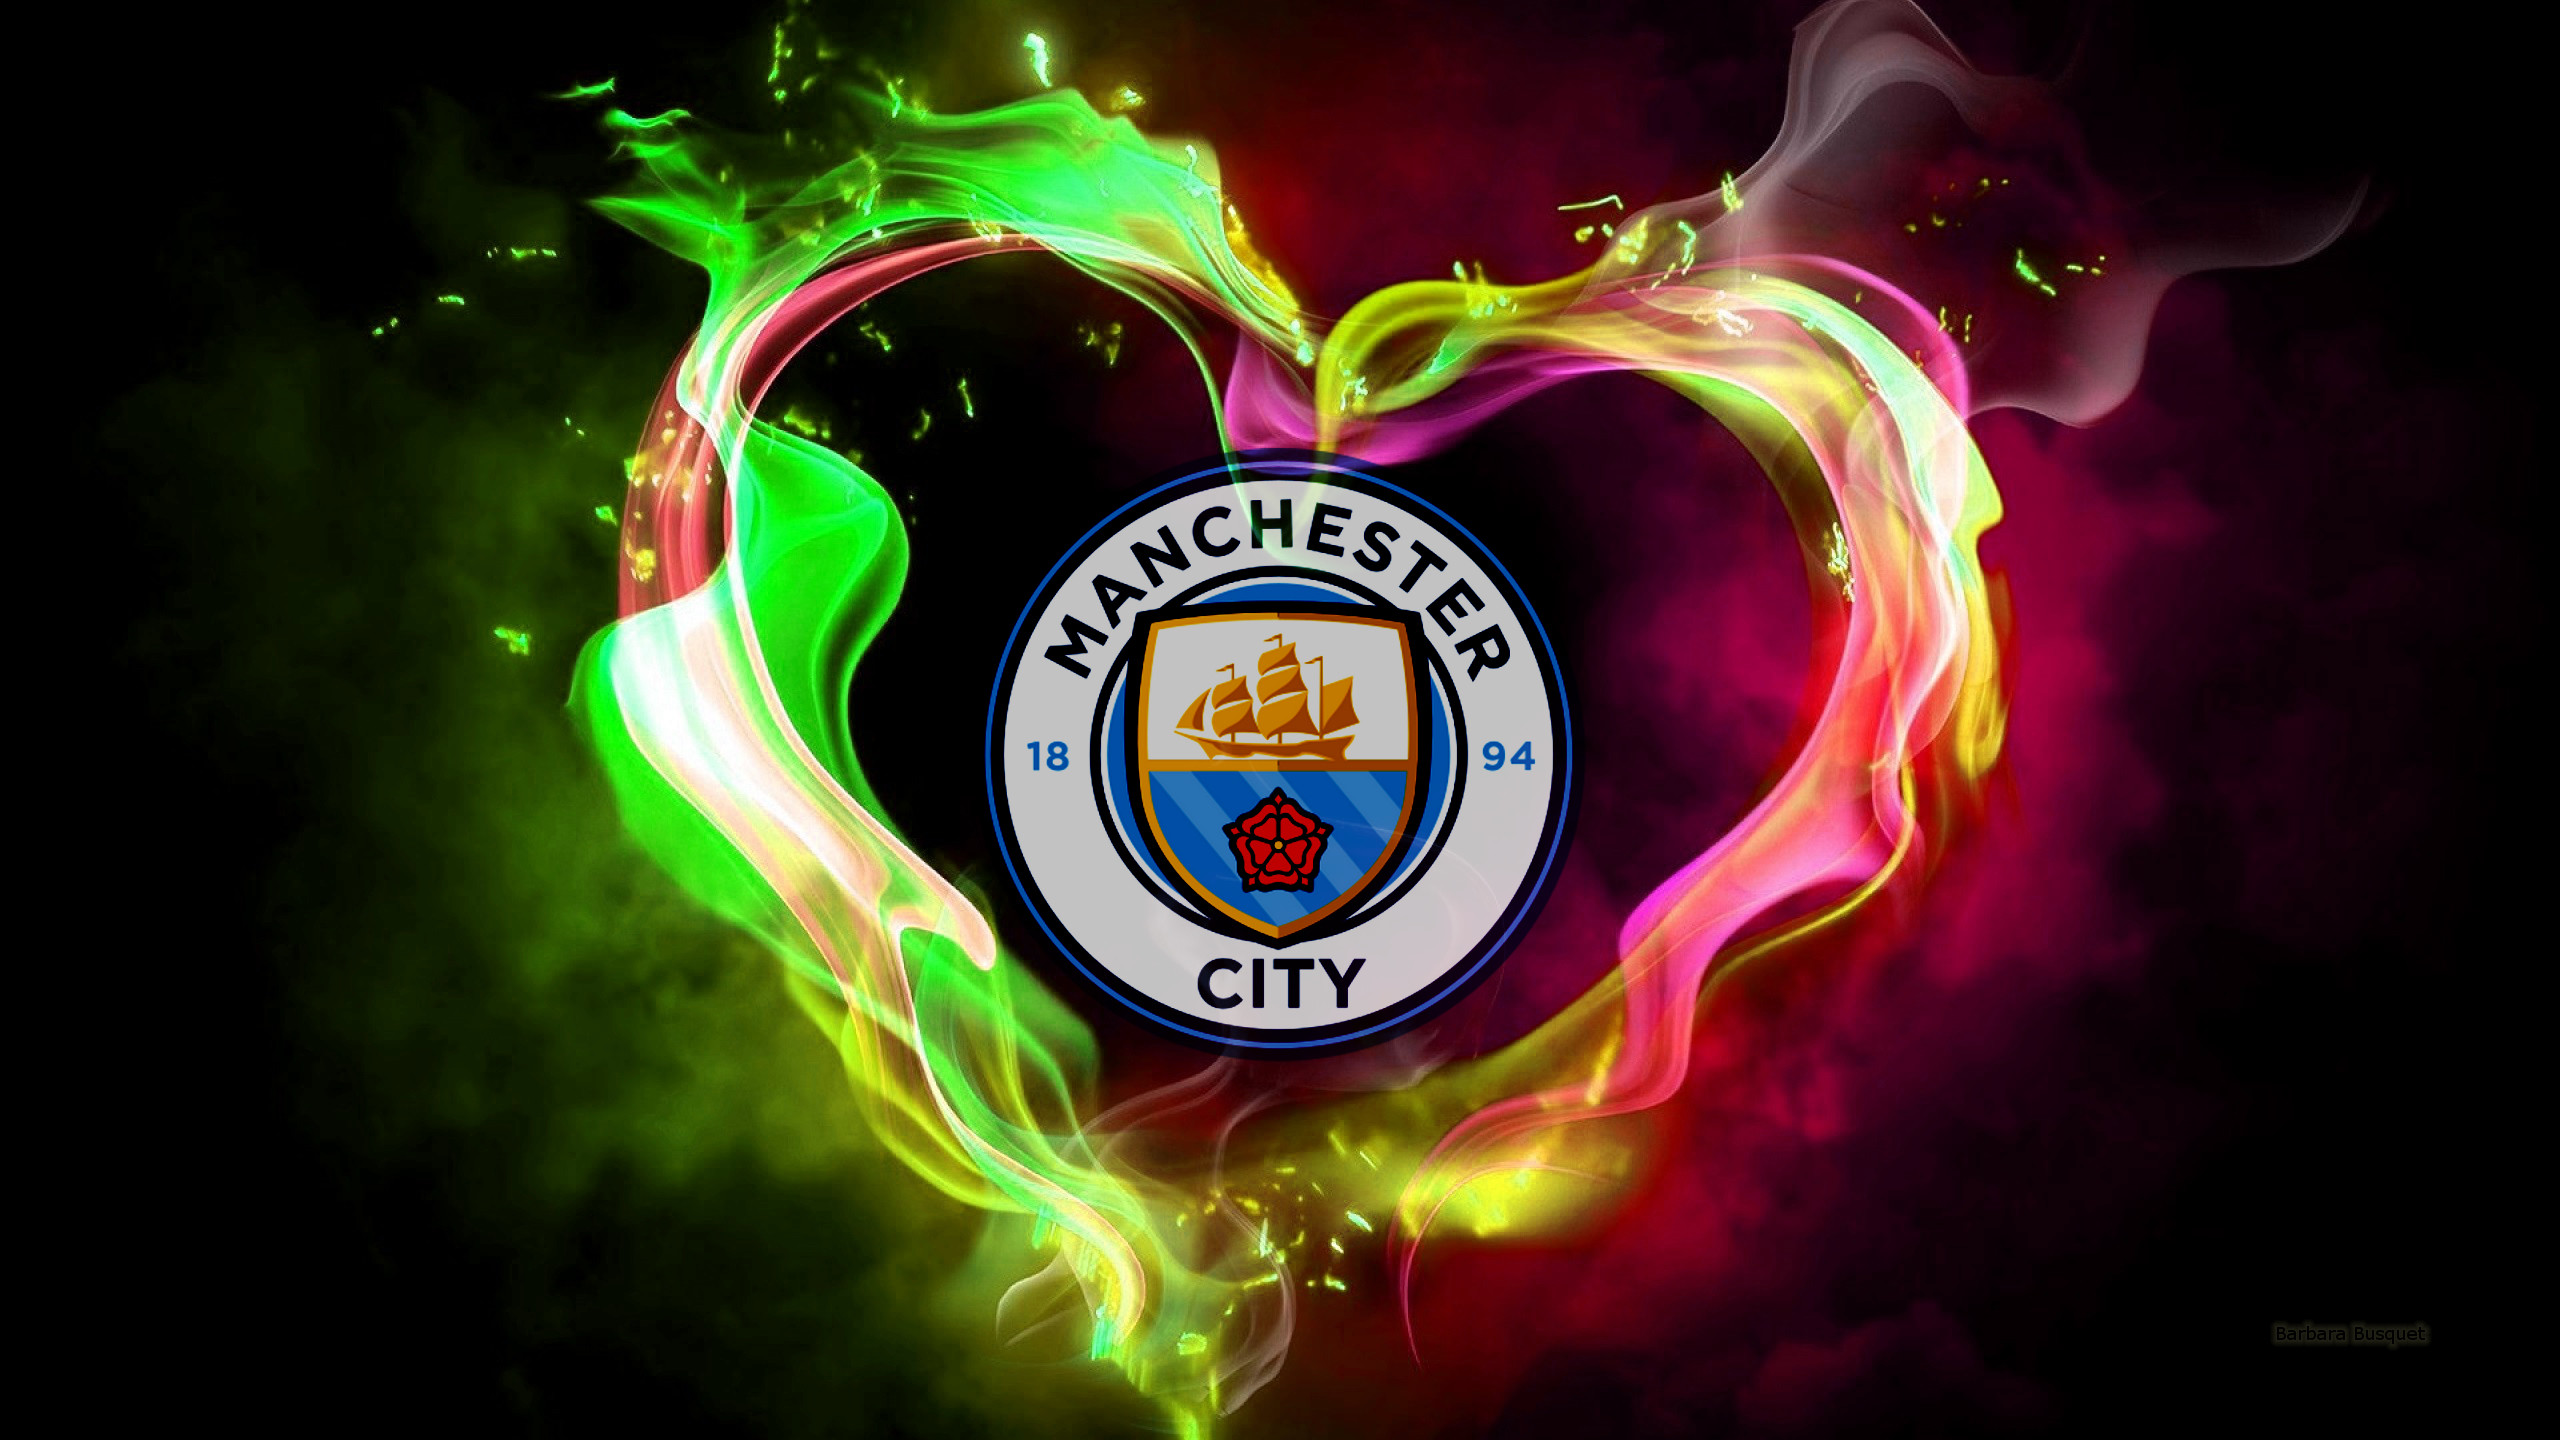 Manchester City F.C. HD Wallpaper | Background Image ...